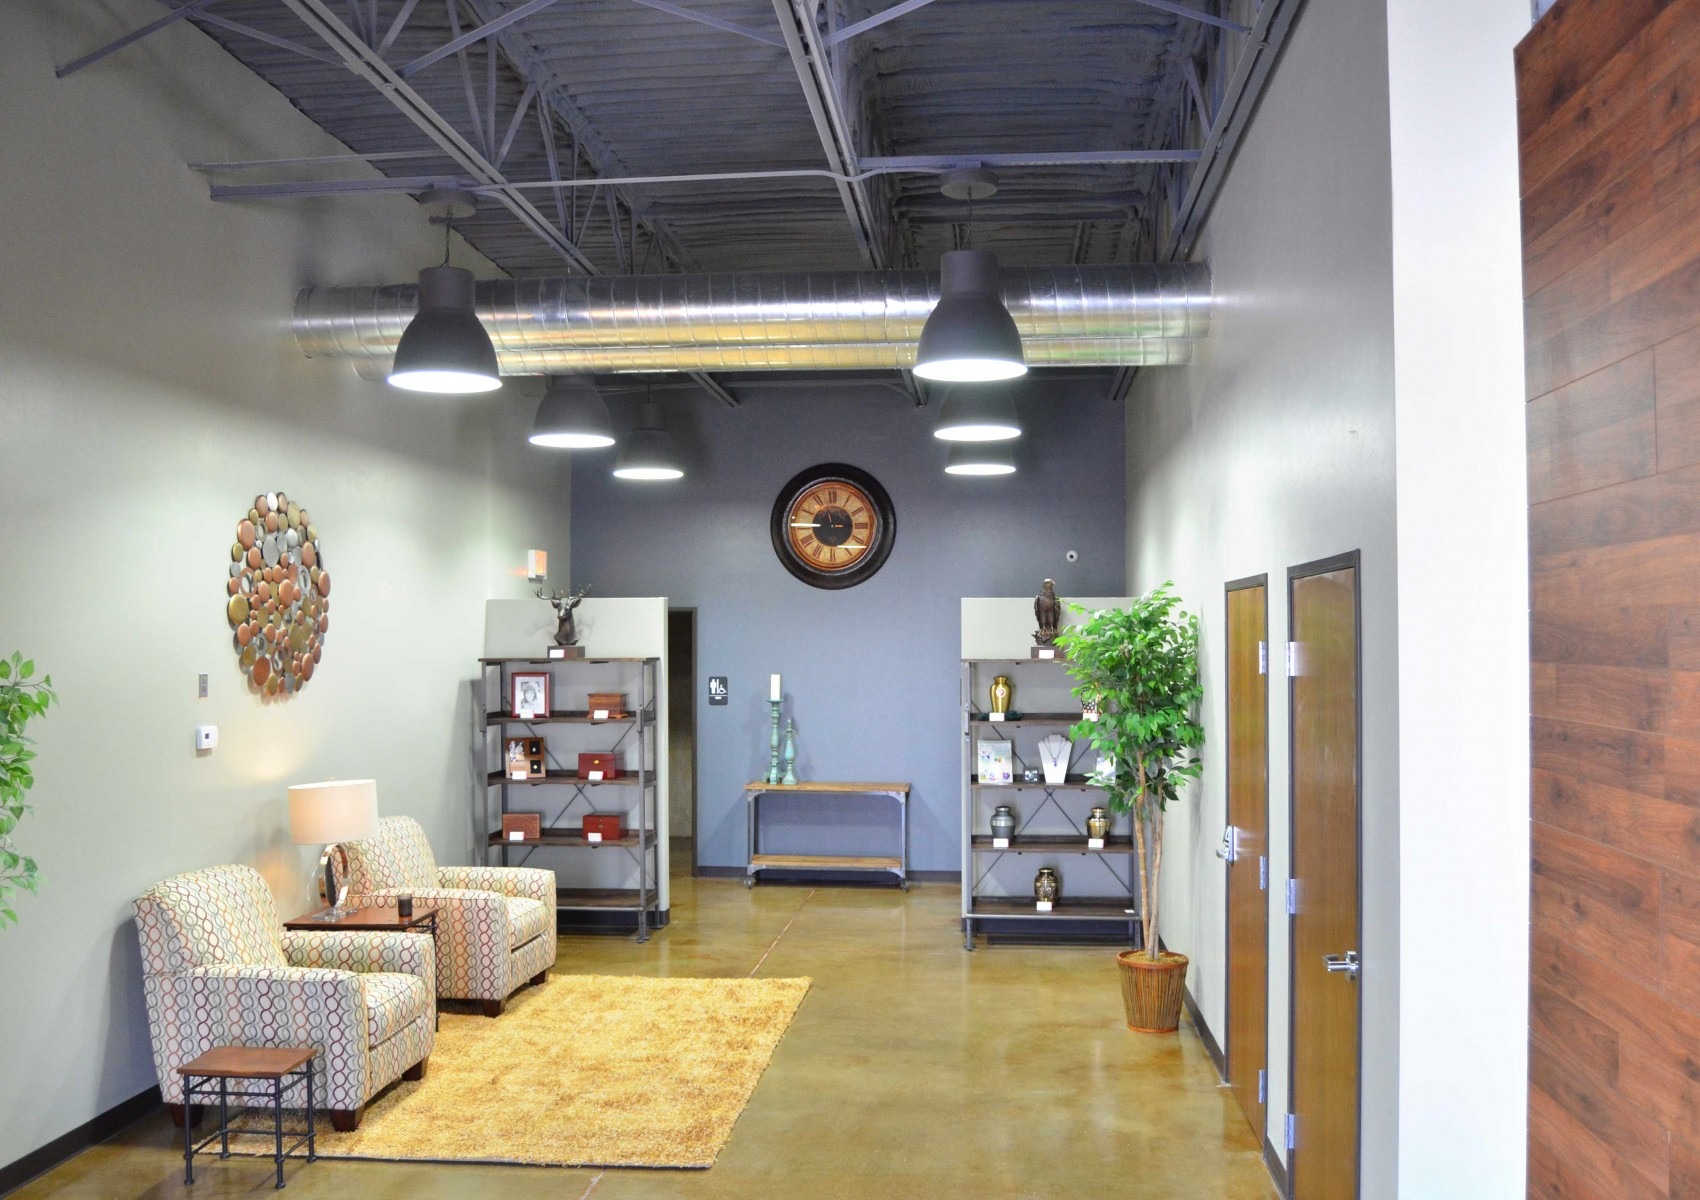 Oklahoma City Cremation Location Lobby Tour